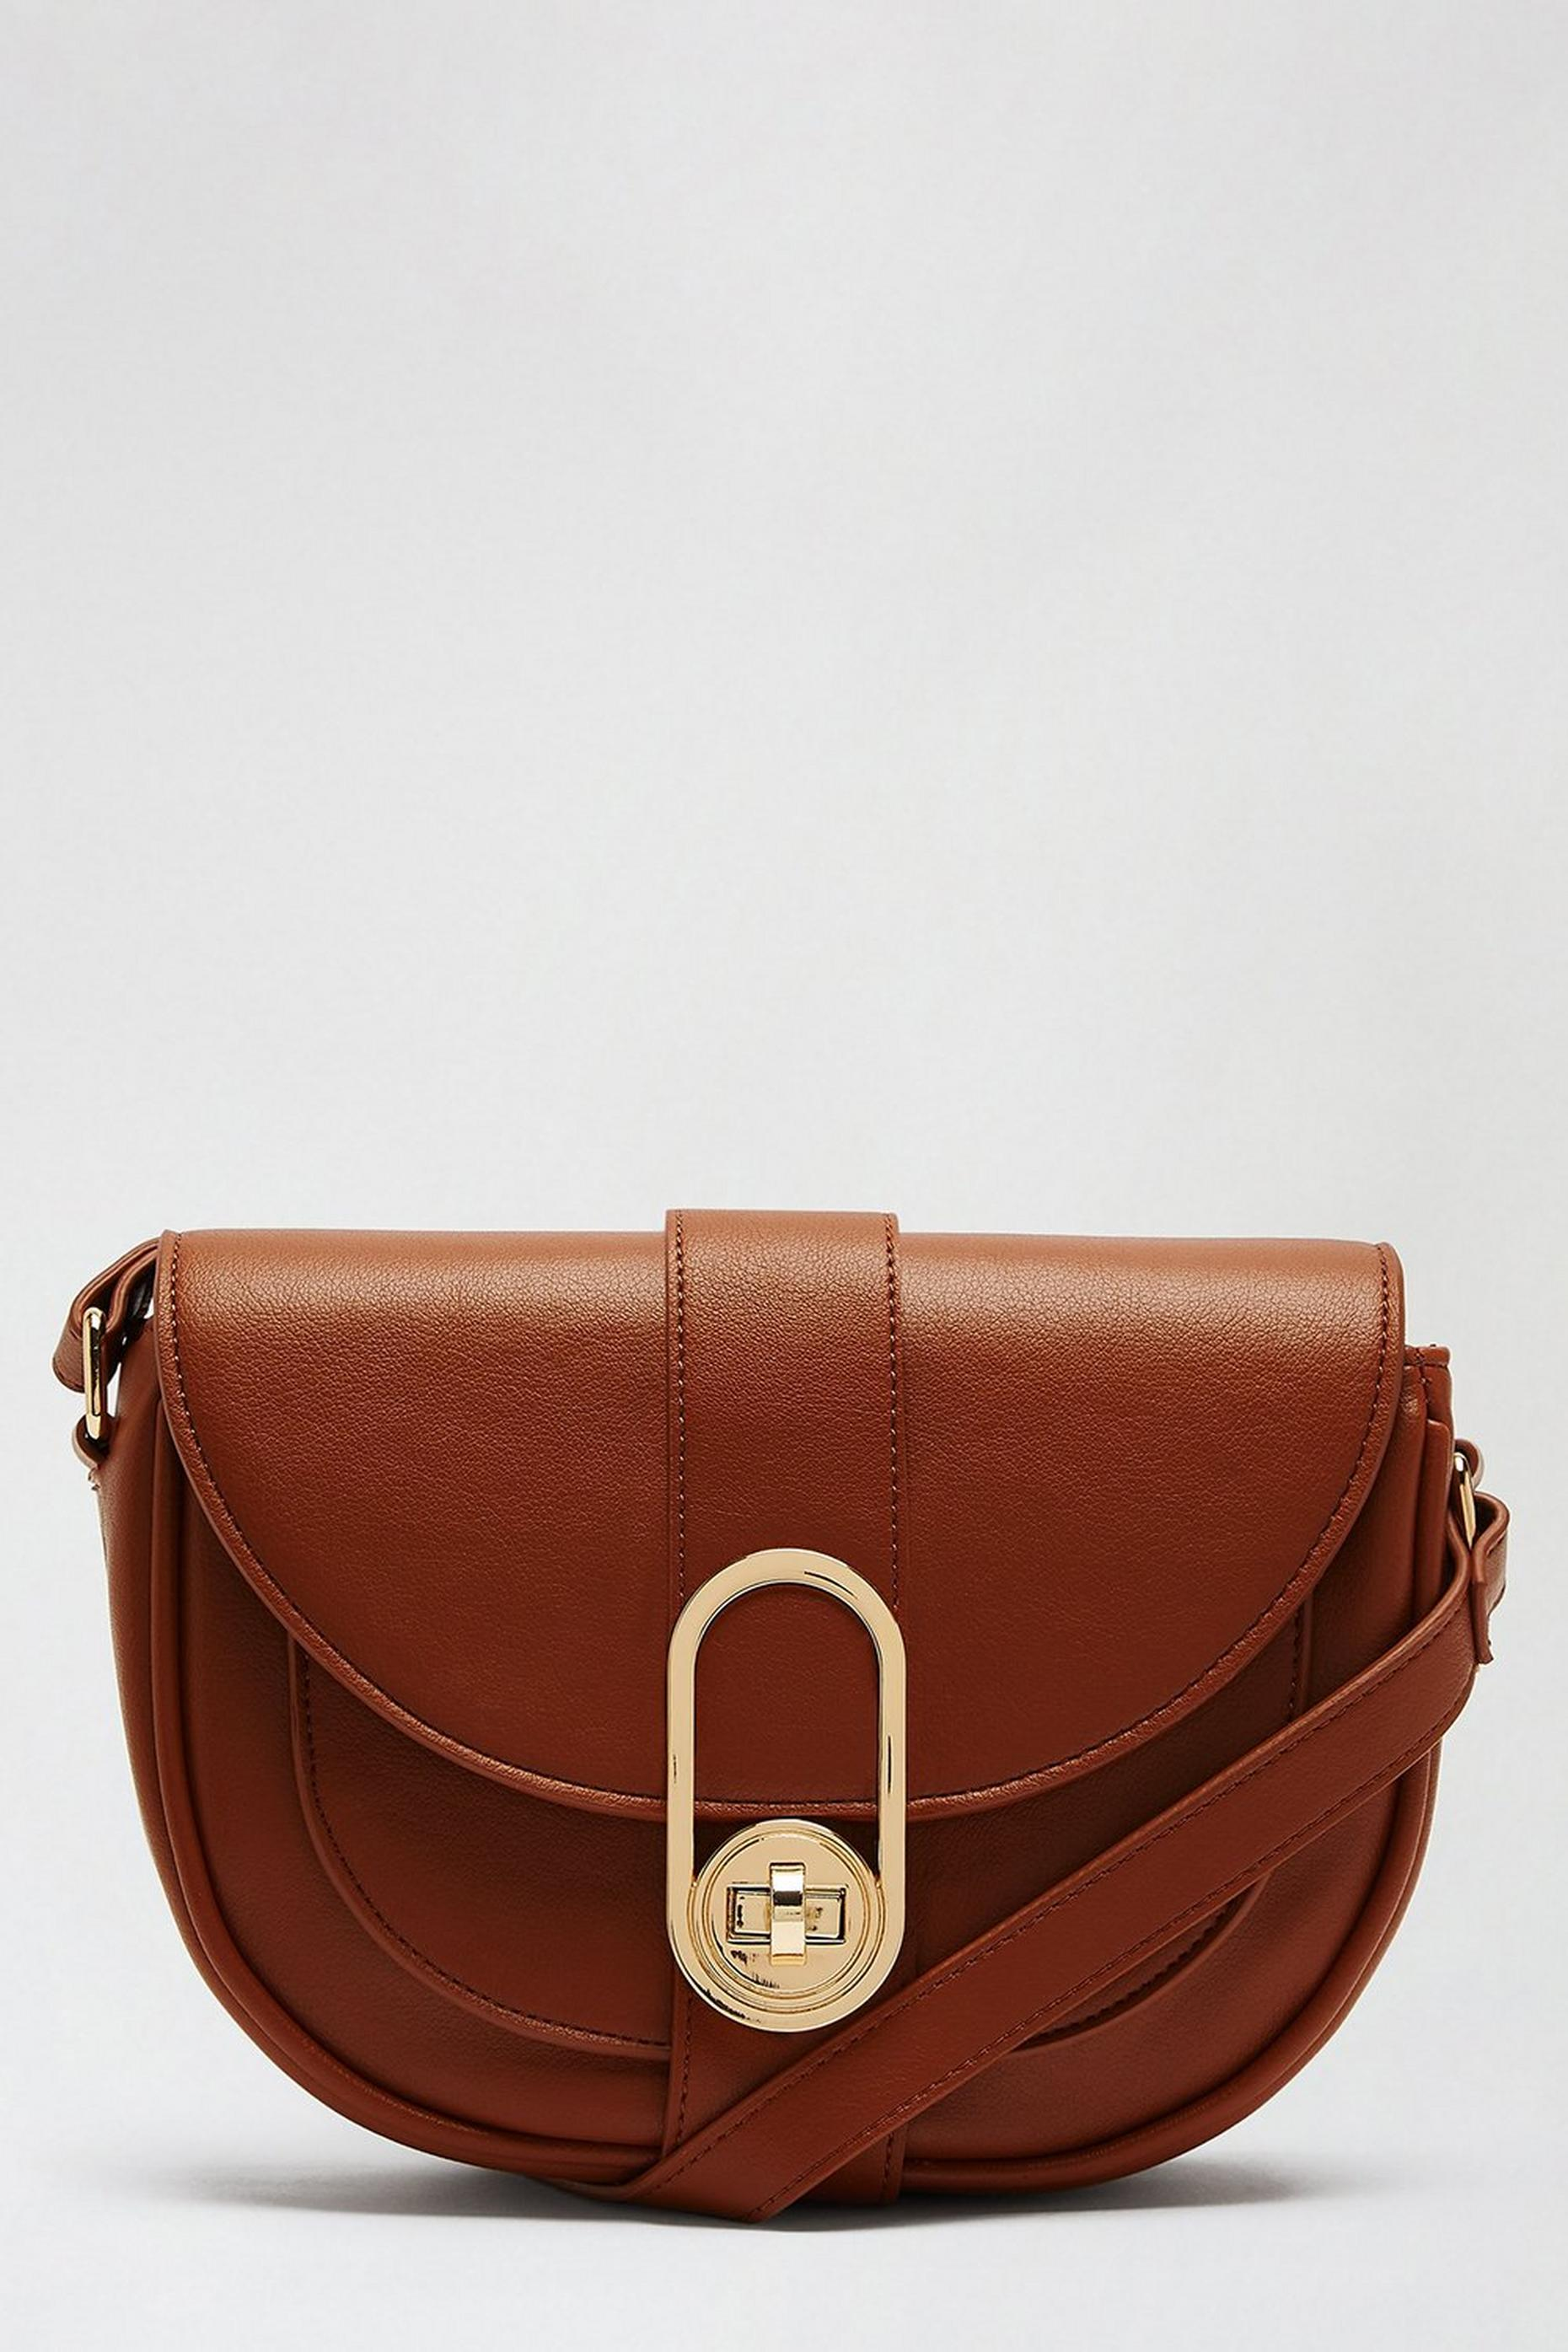 Tan Twistlock Saddle Bag